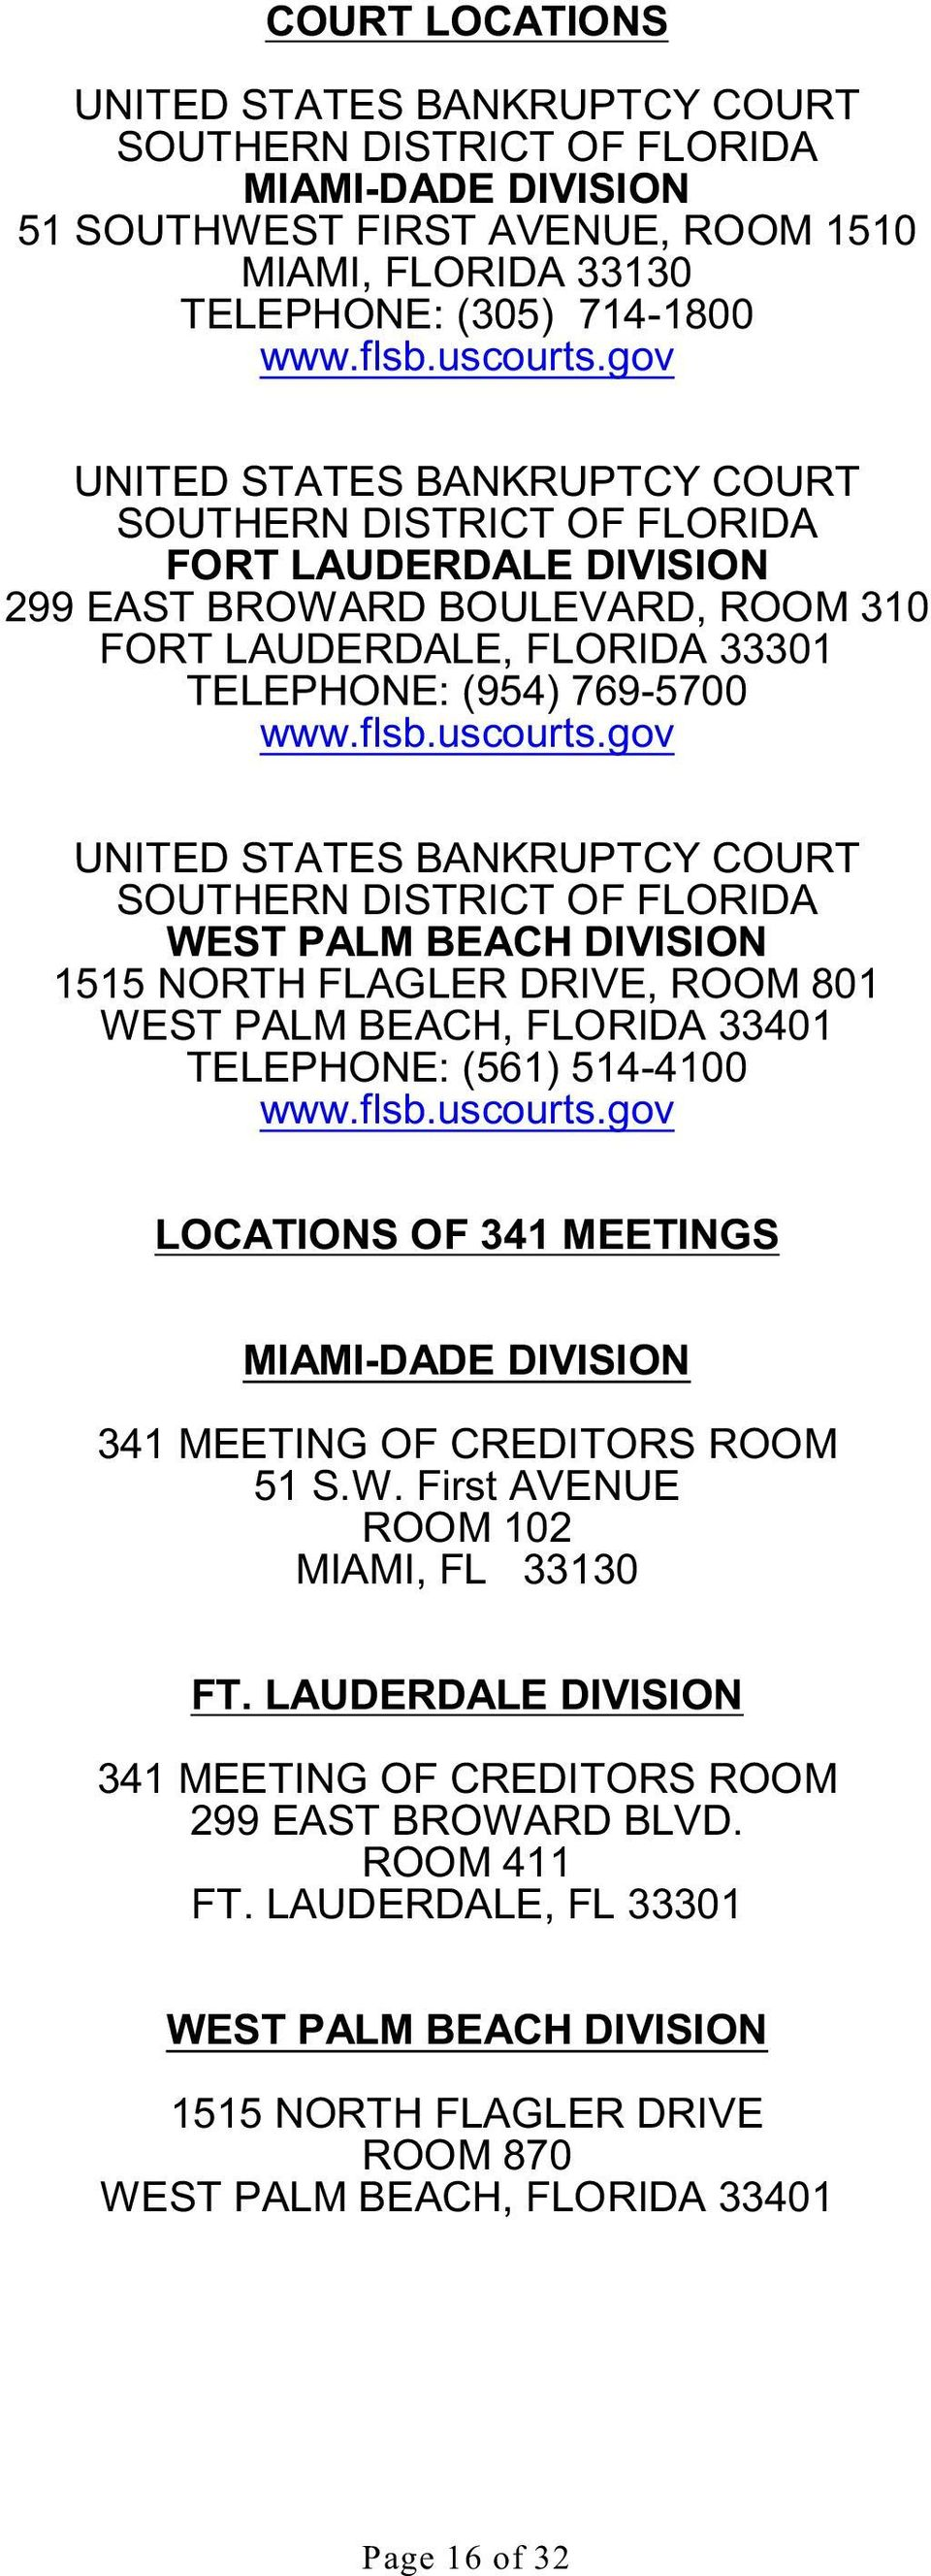 uscourts.gov UNITED STATES BANKRUPTCY COURT SOUTHERN DISTRICT OF FLORIDA WEST PALM BEACH DIVISION 1515 NORTH FLAGLER DRIVE, ROOM 801 WEST PALM BEACH, FLORIDA 33401 TELEPHONE: (561) 514-4100 www.flsb.